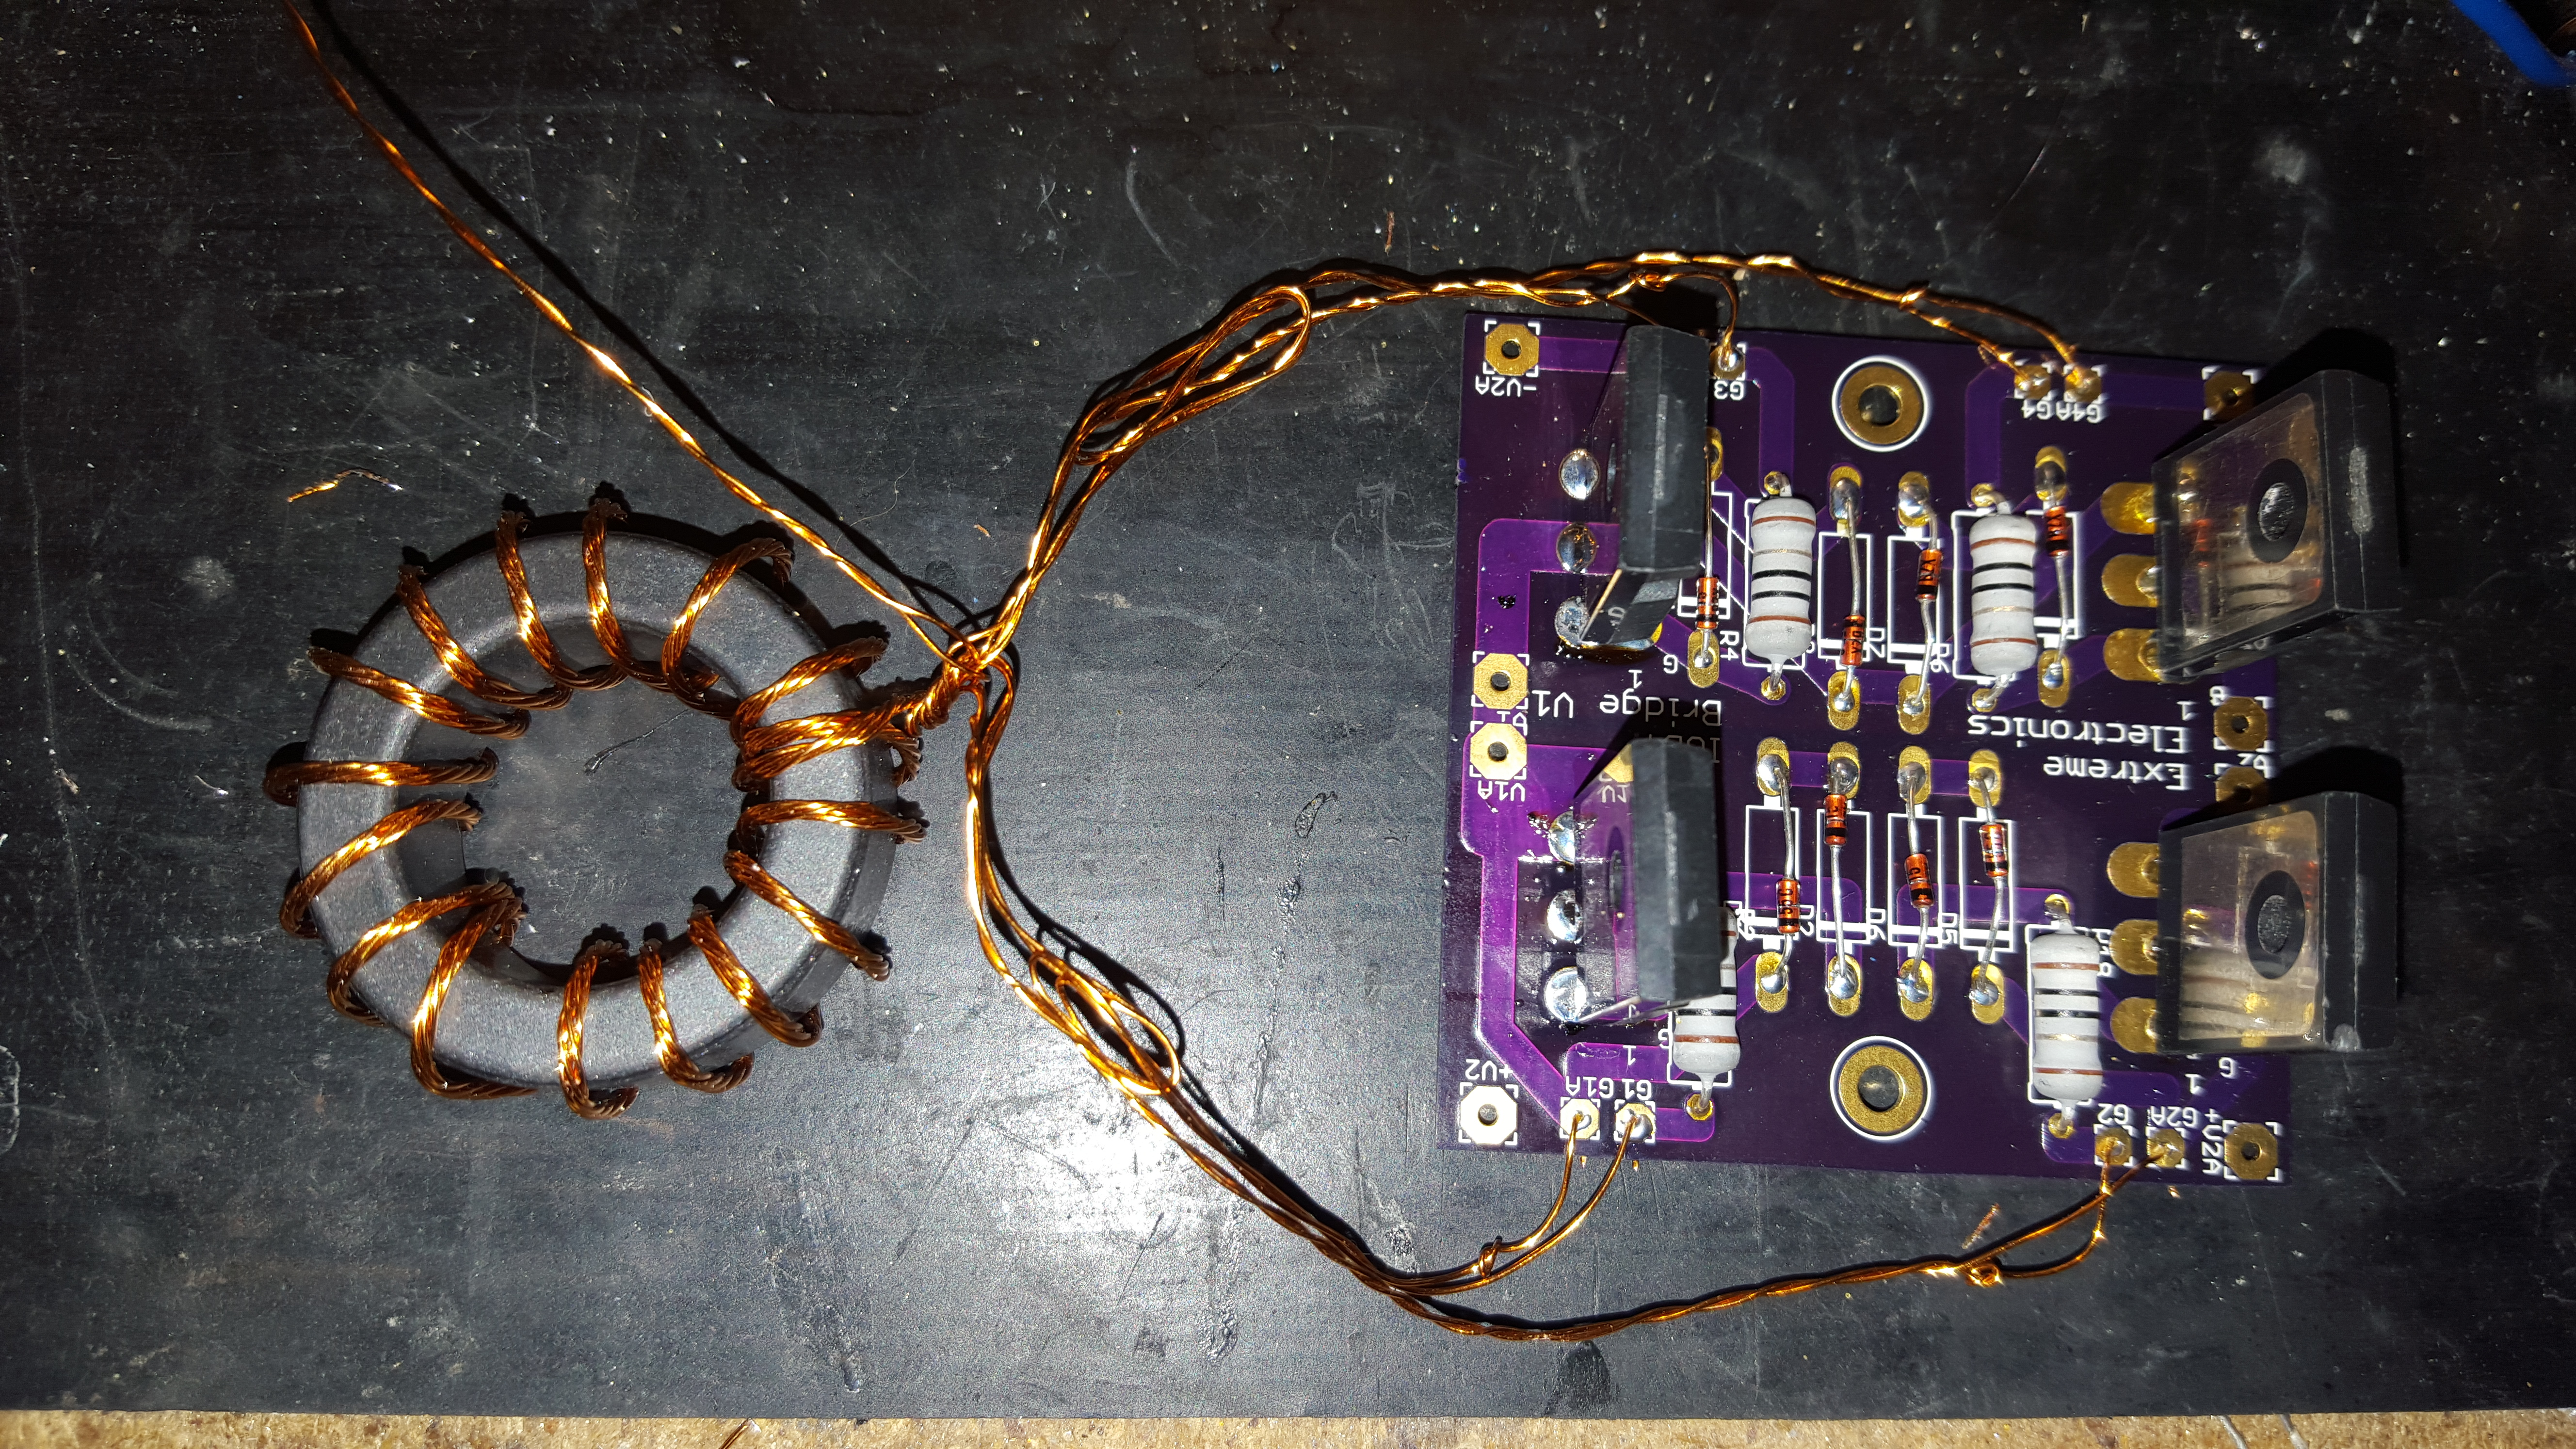 Iqim also Mv Coilmaster Mark1 Coil Gun additionally Plasma Ball Watch Concept further 10 Unique Practical Ways Repurpose Your Old Hard Disk Drives 0142951 in addition Solid State Tesla Coil Bridge. on tesla coil parts